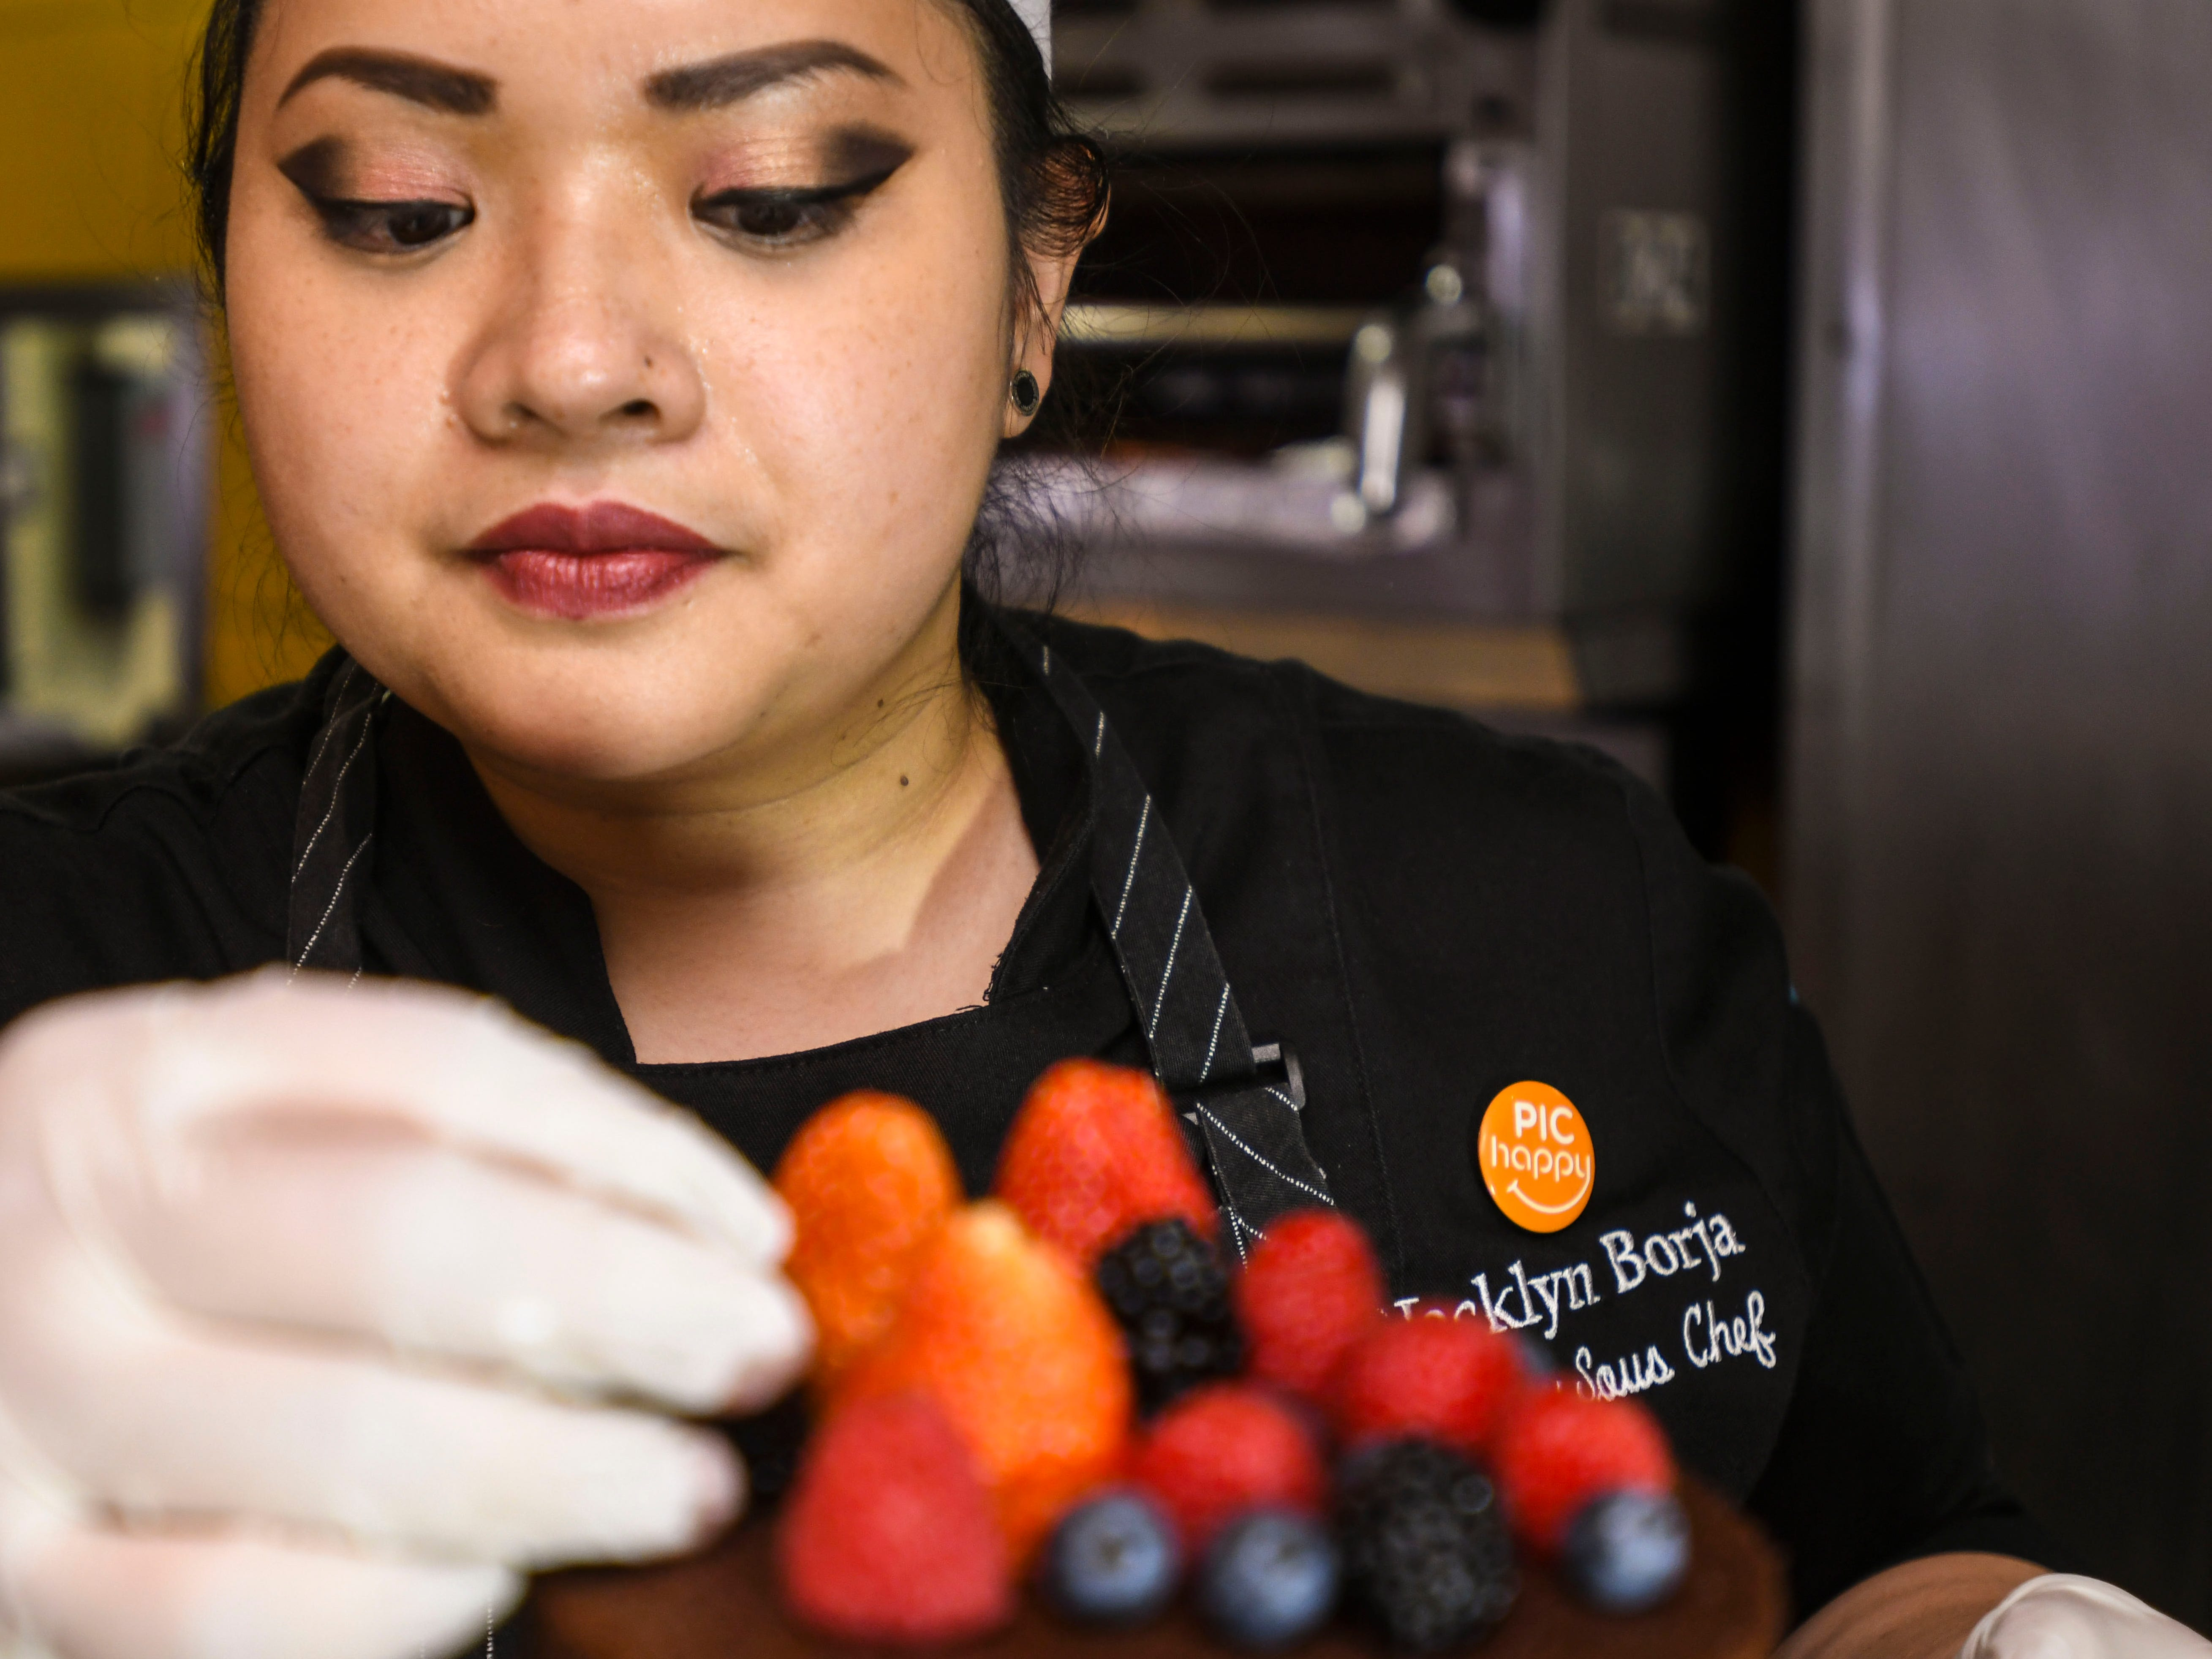 Jacklyn Borja, Pacific Islands Club pastry sous chef, meticulously arranges an assortment of fresh berries to top off a naked berry cake at the hotel's Bistro restaurant in Tumon on Feb. 7, 2019.